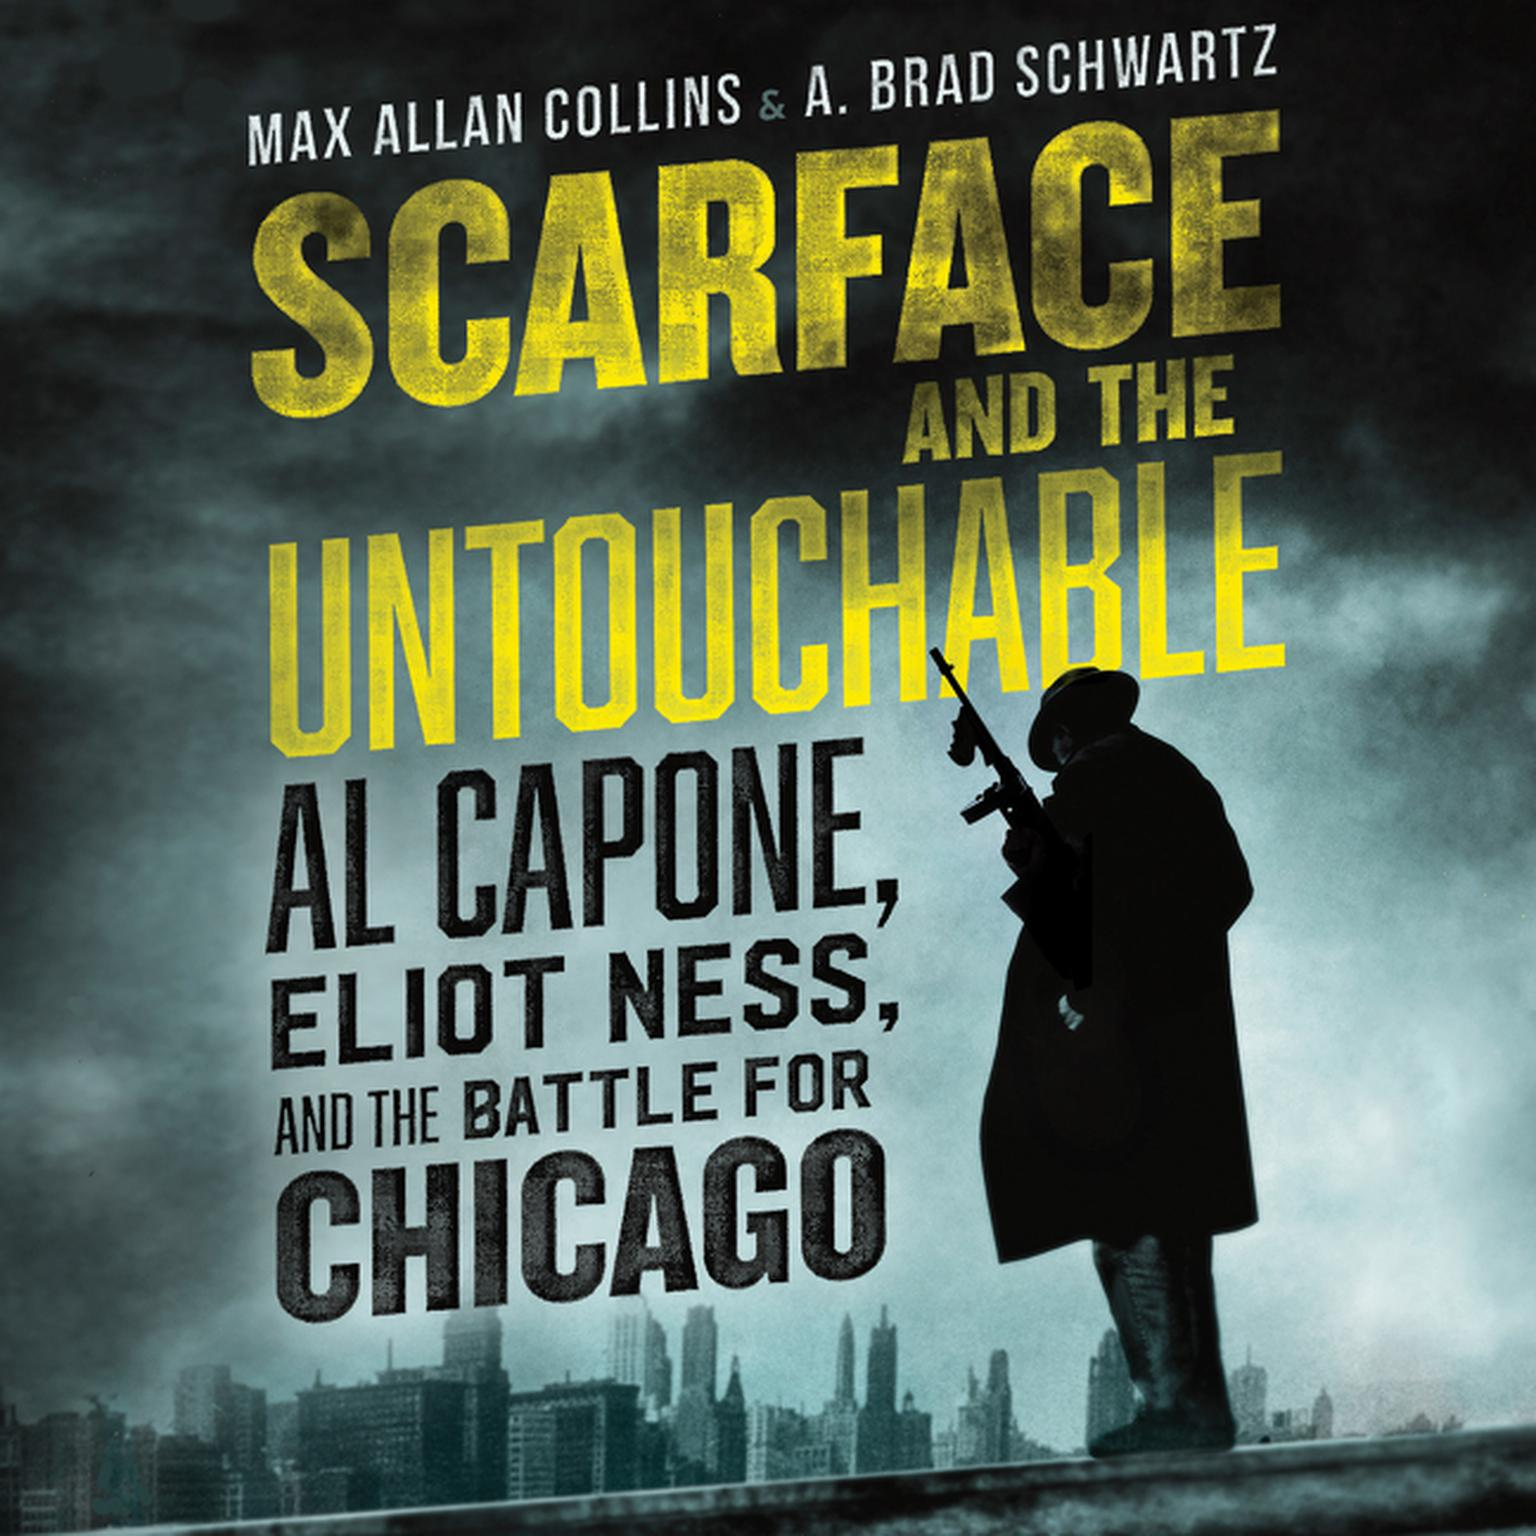 Printable Scarface and the Untouchable: Al Capone, Eliot Ness, and the Battle for Chicago Audiobook Cover Art